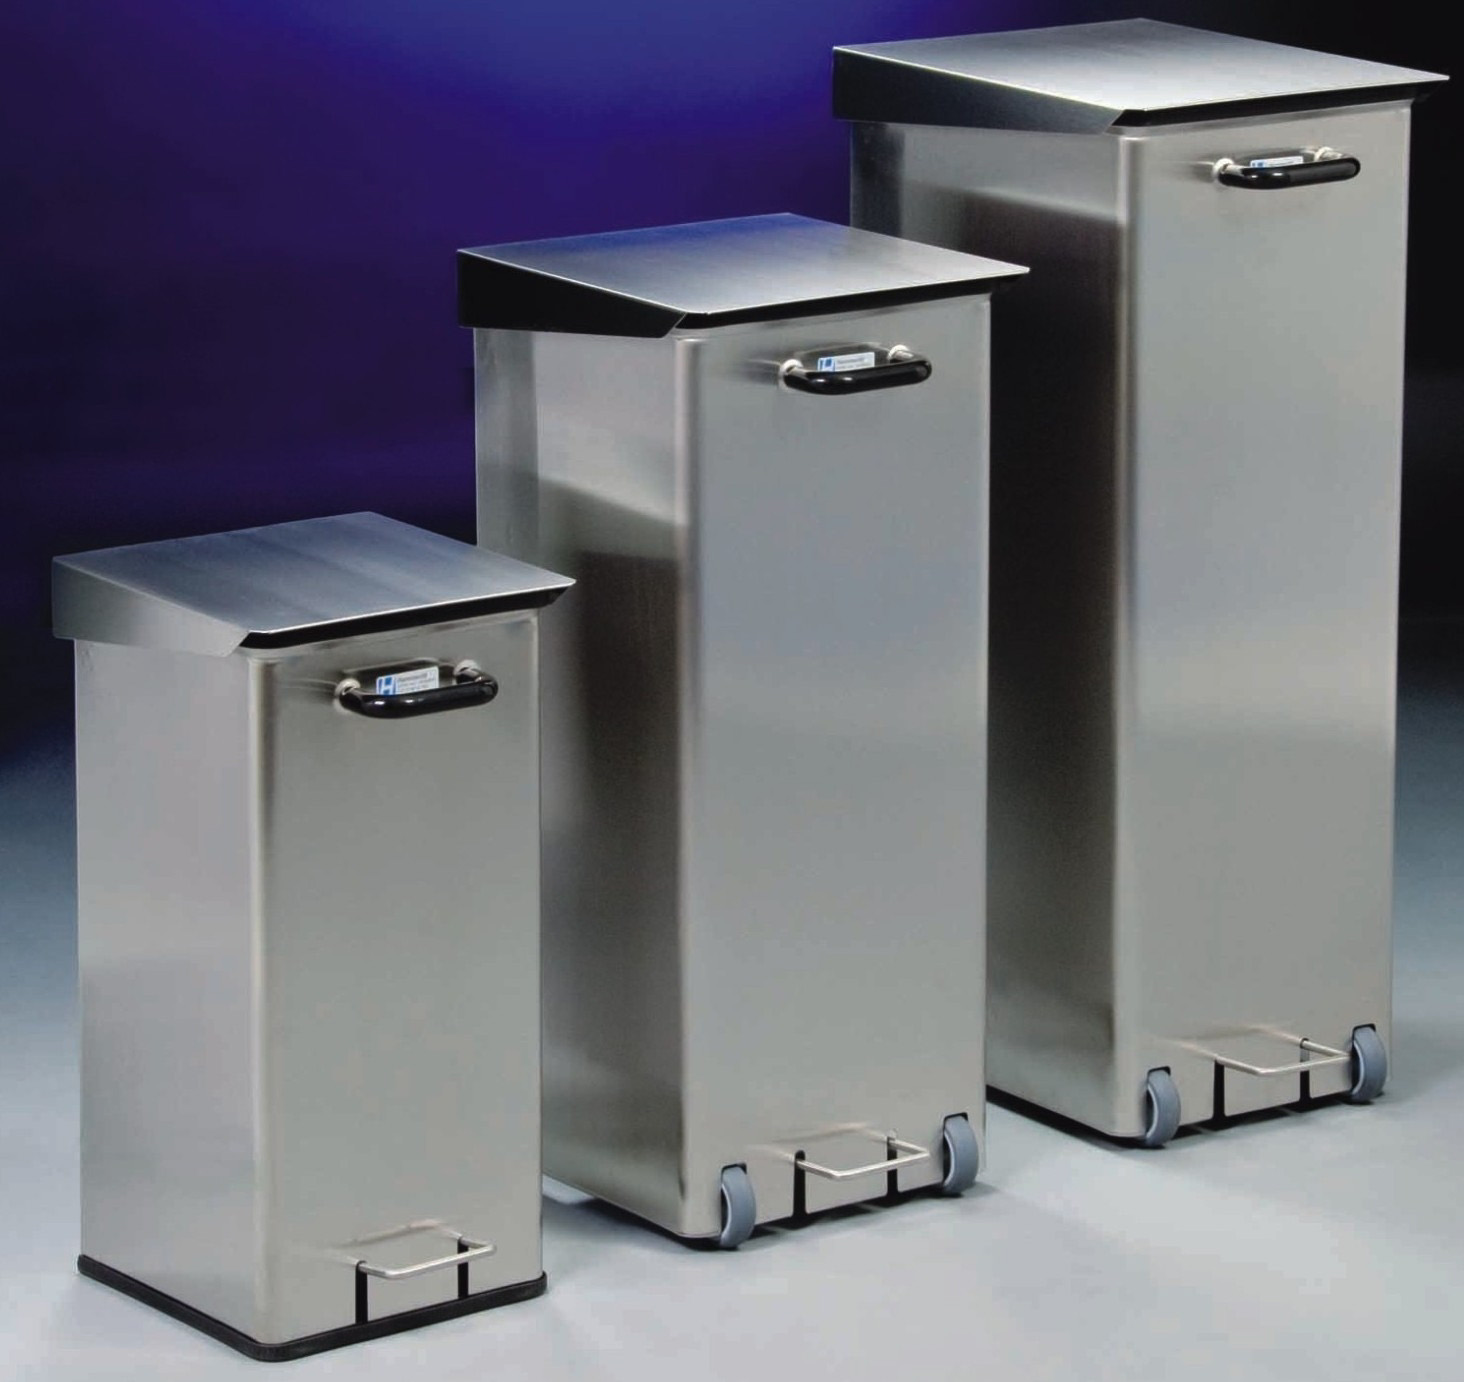 Cleanroom waste bin made of stainless steel with castors